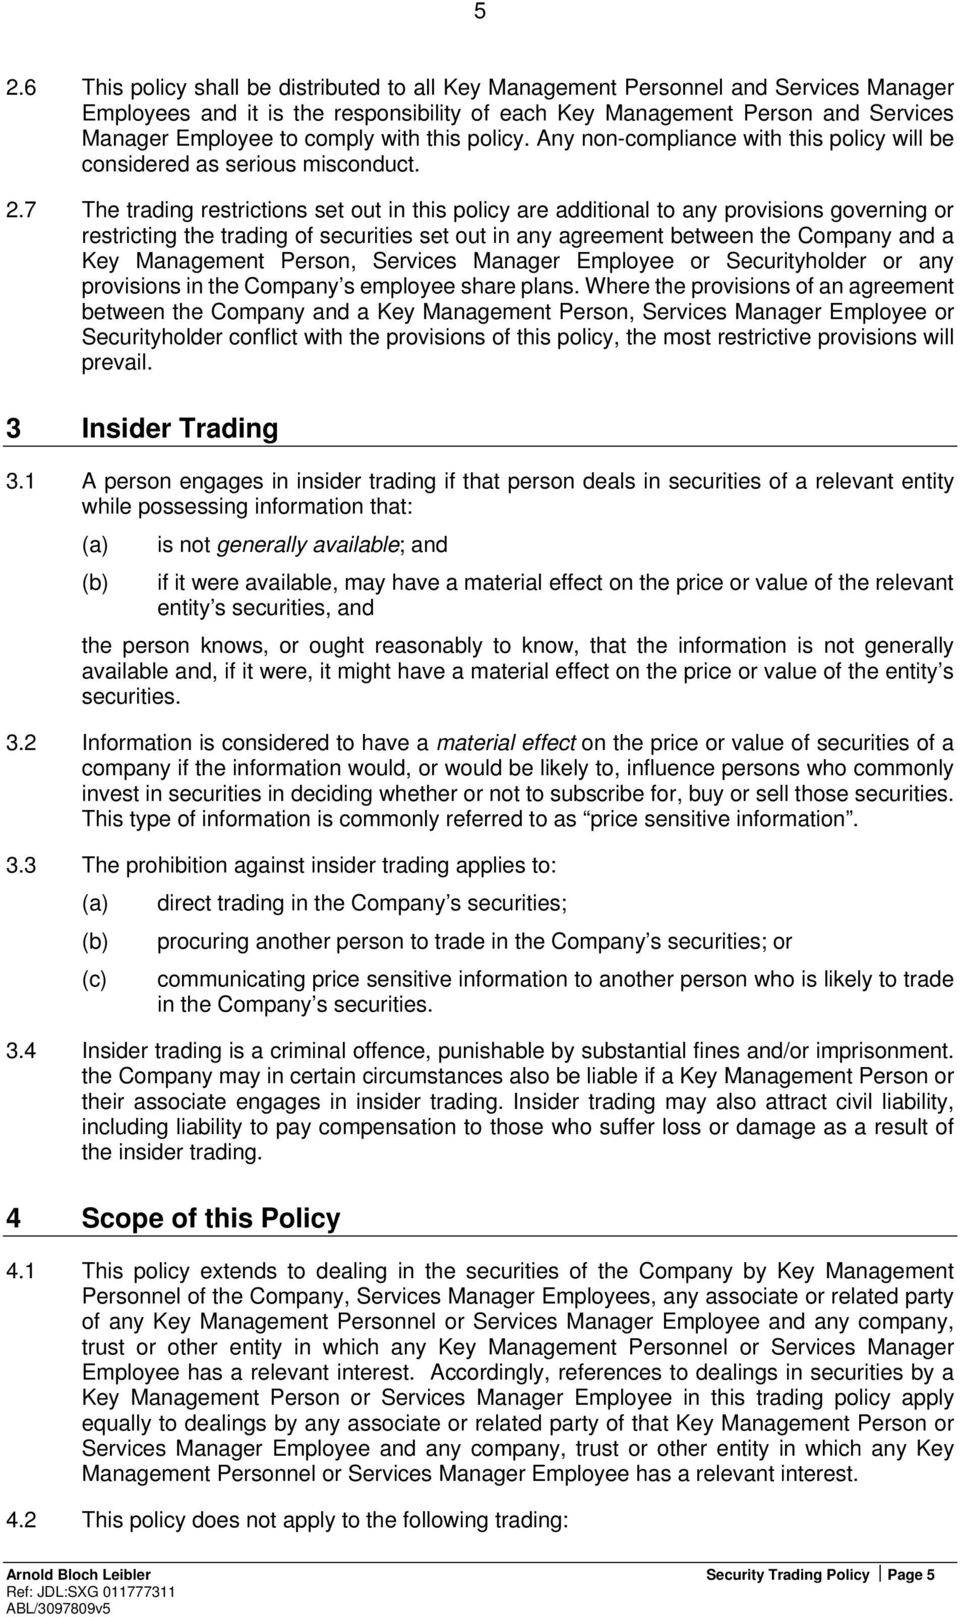 7 The trading restrictions set out in this policy are additional to any provisions governing or restricting the trading of securities set out in any agreement between the Company and a Key Management